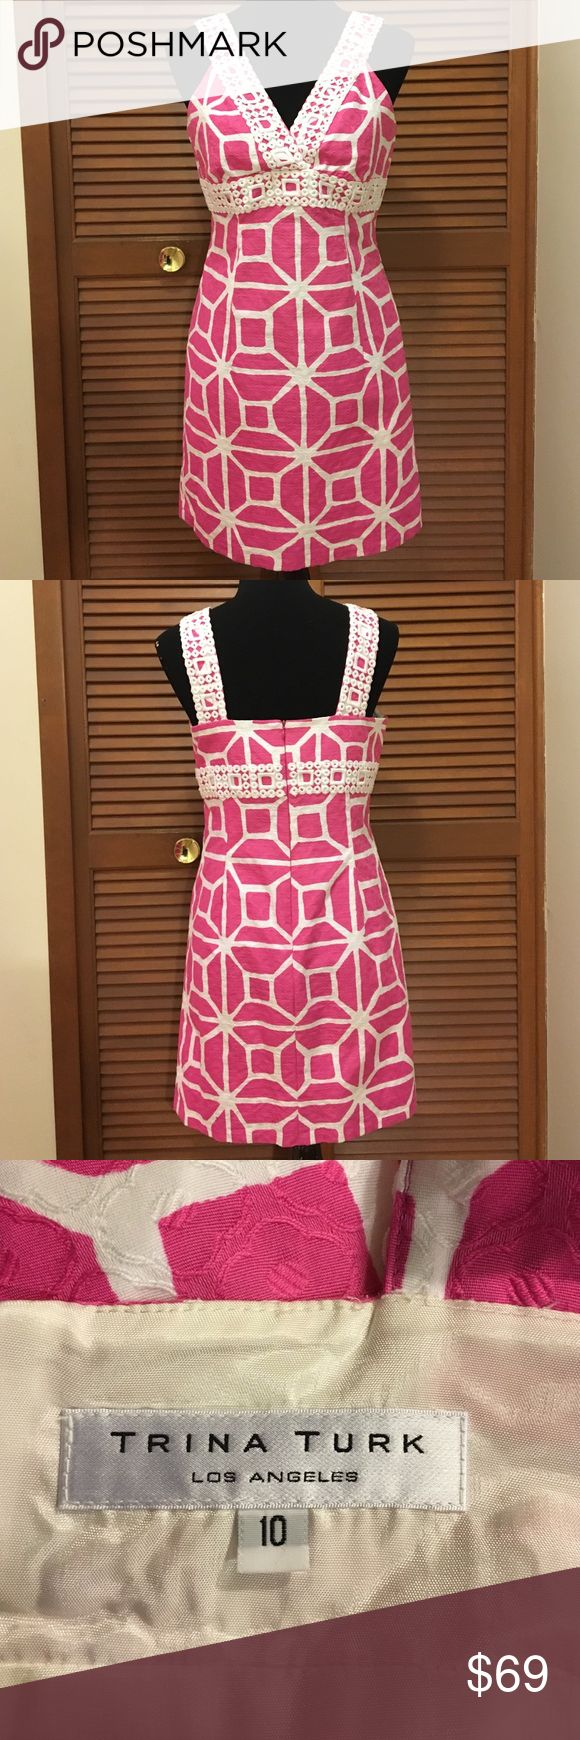 Trina Turk dress size 10 pink and white This dress is gorgeous!! Pink and white geometric print Trina Turk dress. Size 10. Dress is fully lined. Dress is 100% cotton. lining is 100% acetate. Bundle two or more items from my closet and save! Trina Turk Dresses